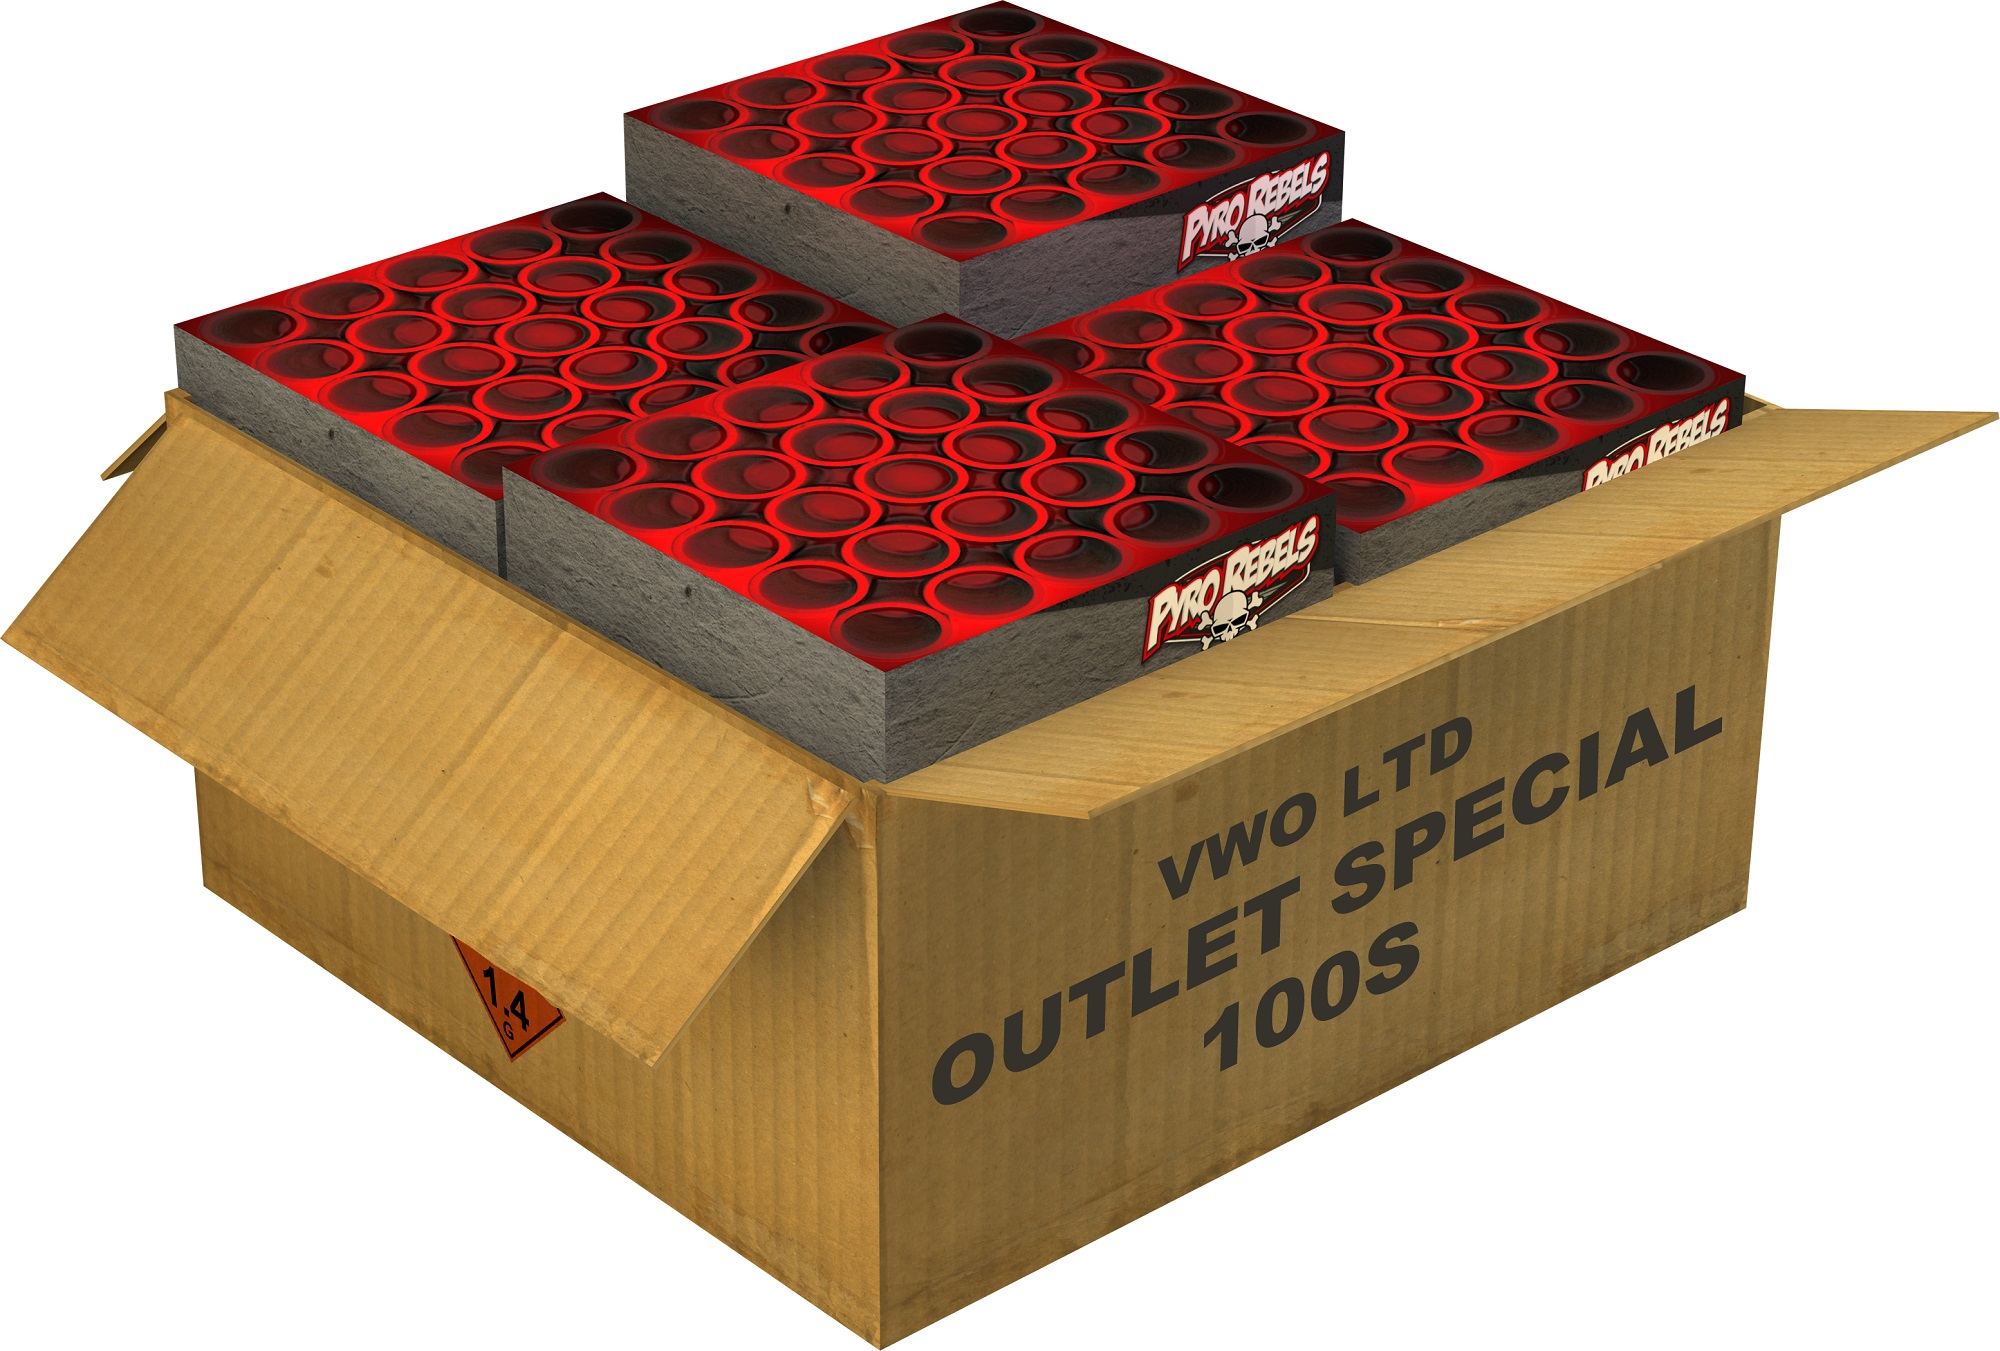 Outlet Special 100's Cakebox LTD